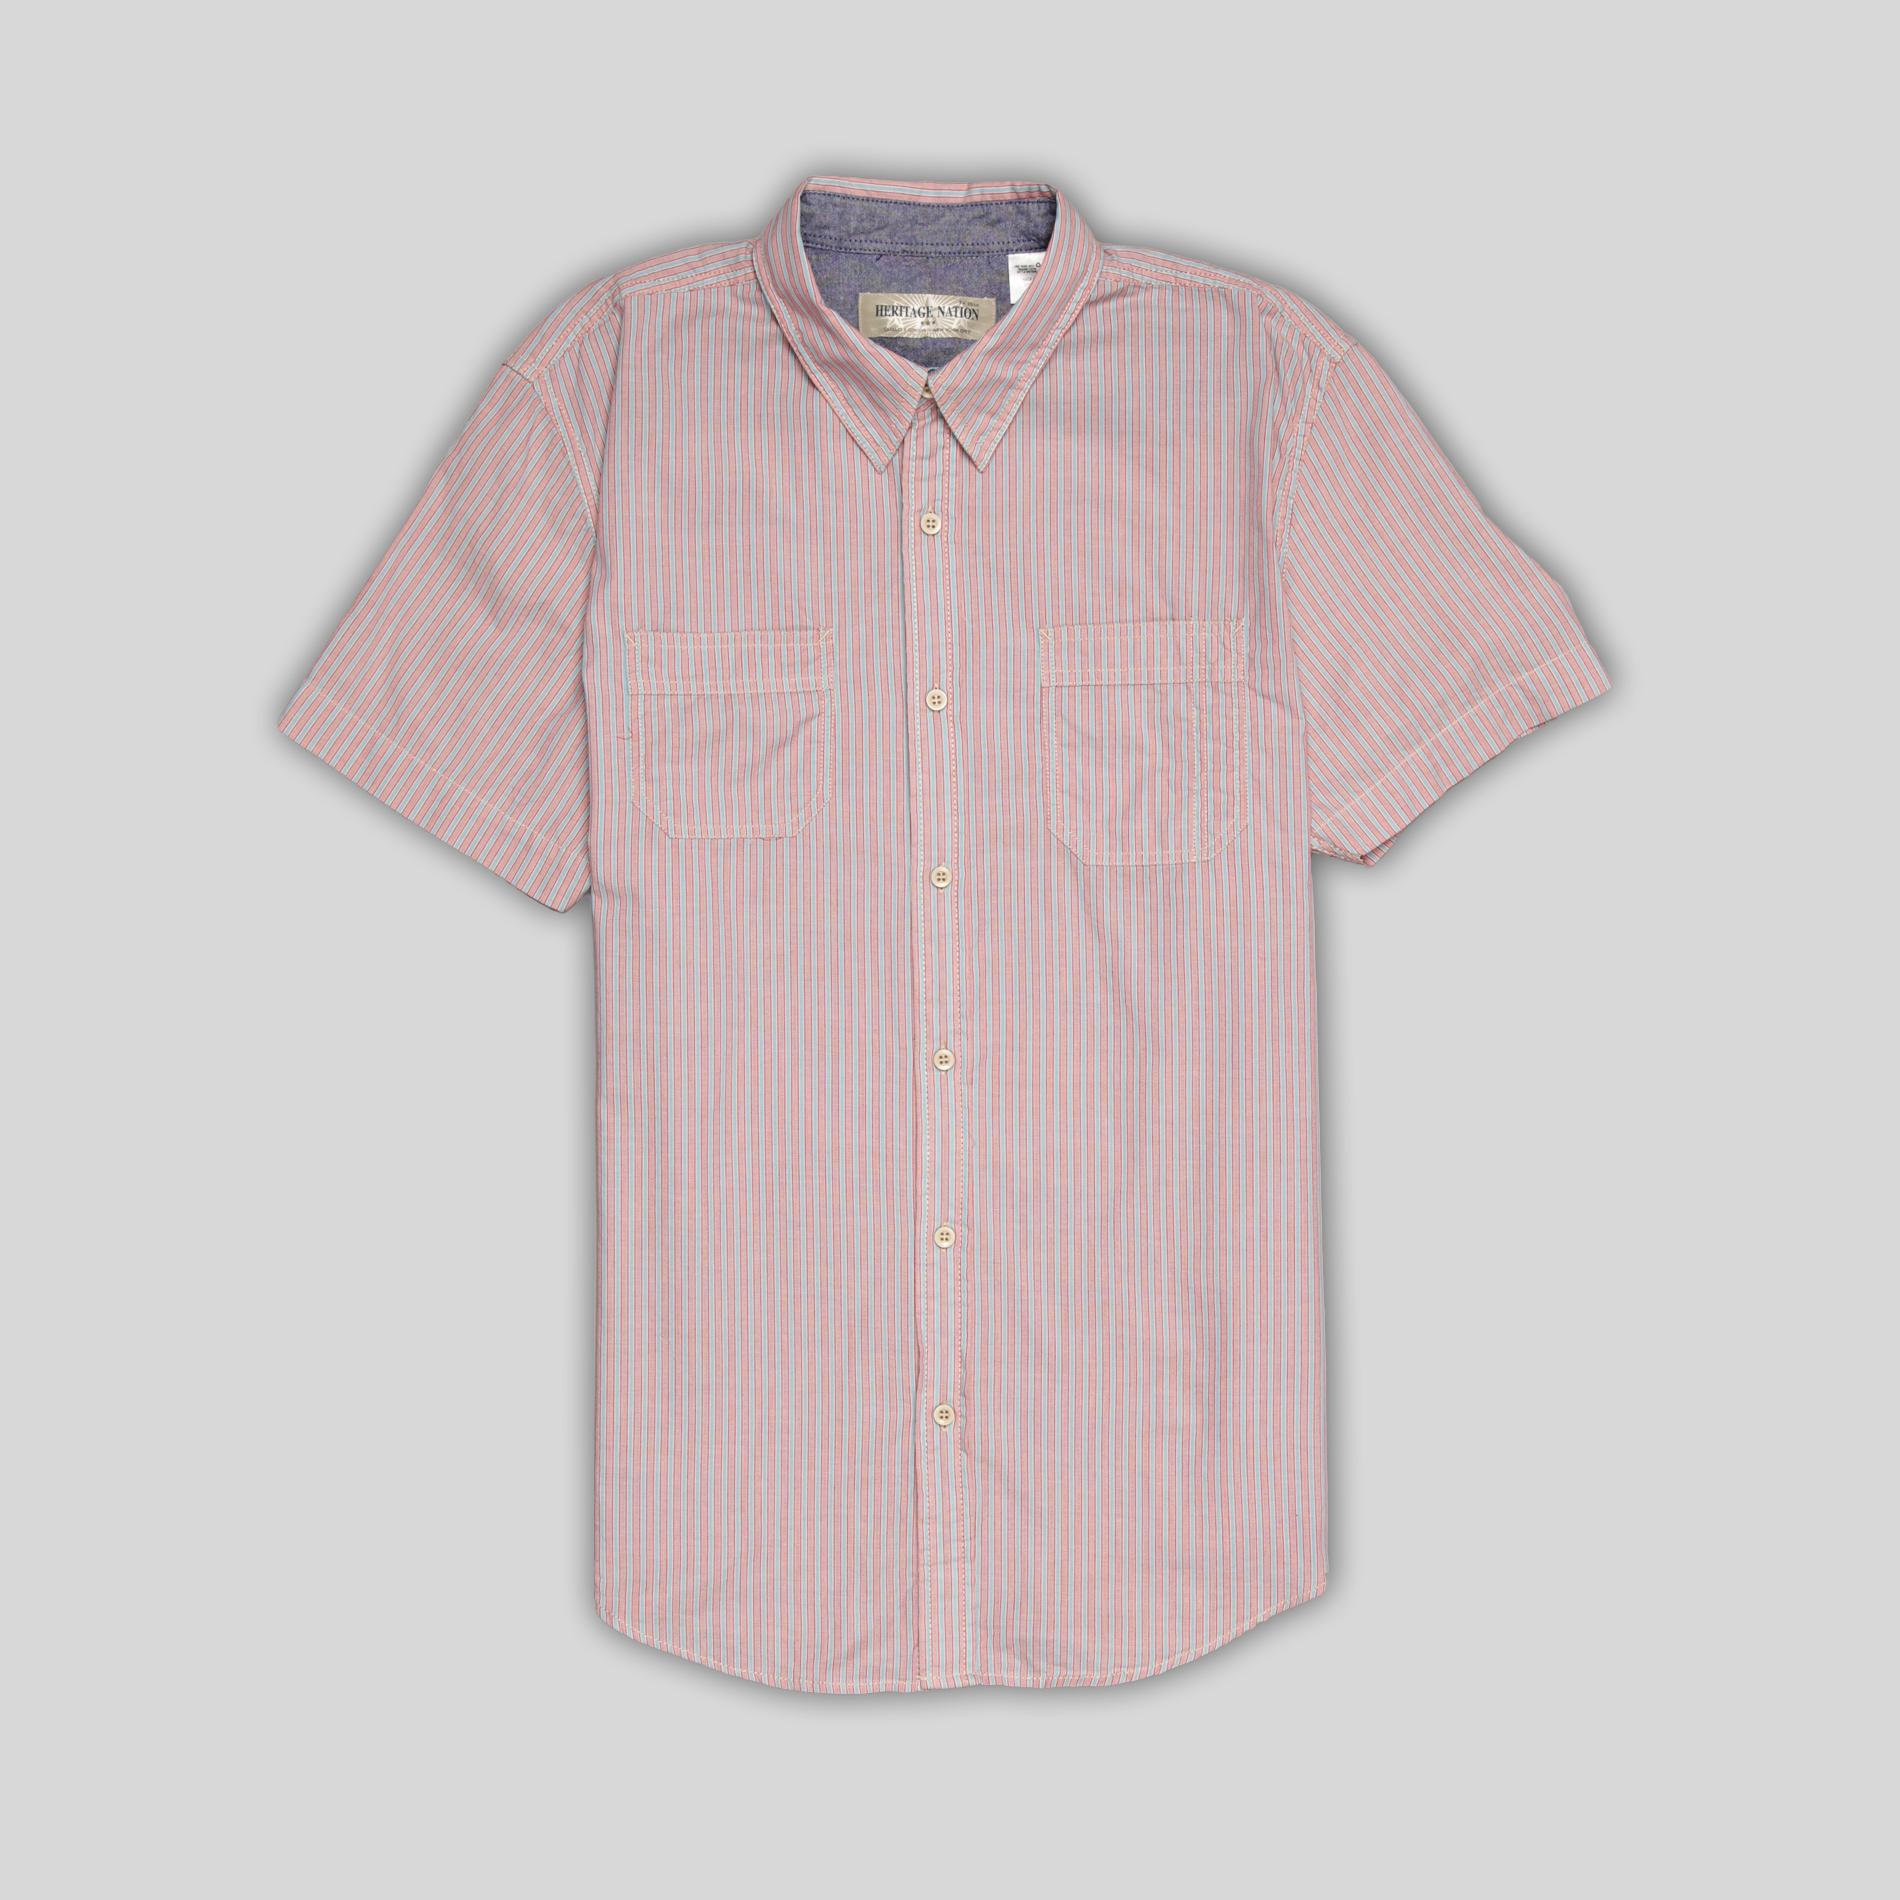 Heritage Nation Men's Shirt - Striped at Kmart.com